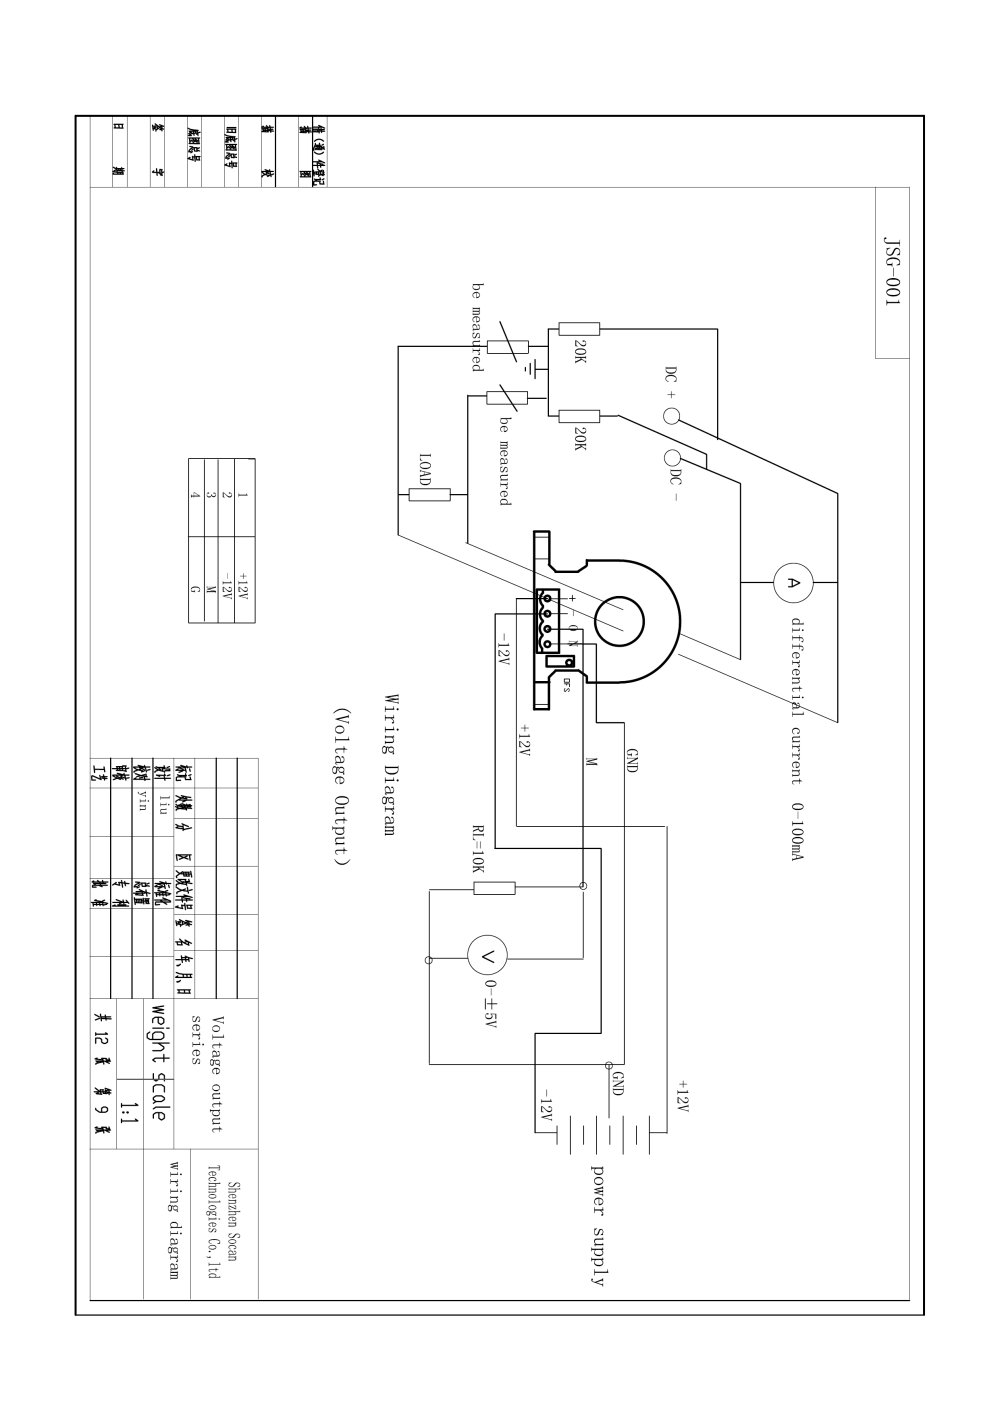 dc leakage current sensor scd series wiring diagram 601113_1b aiphone wiring diagram wiring schematic for nutone intercom im aiphone gt 1c wiring diagram at webbmarketing.co